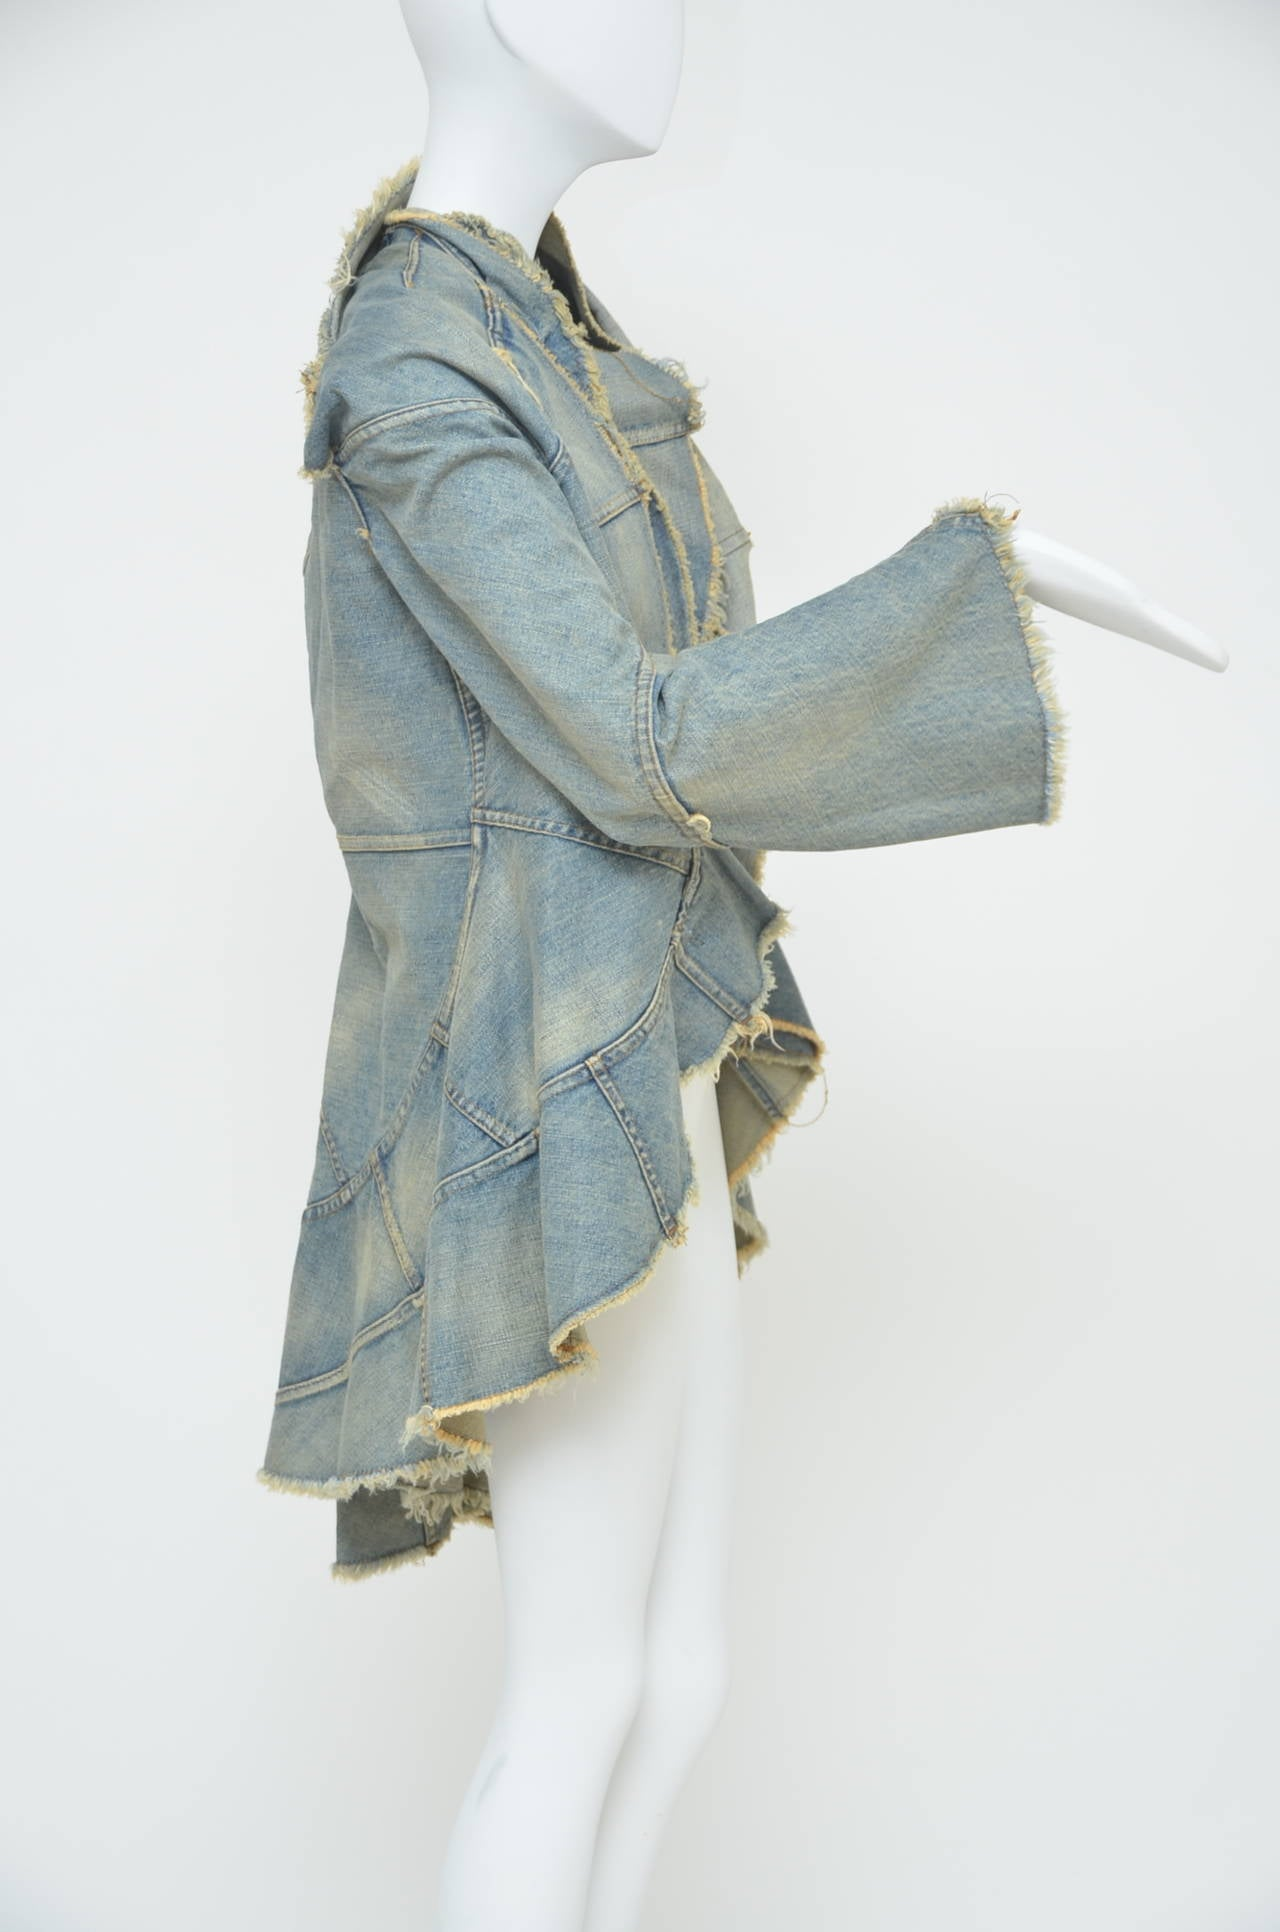 Junya Watanabe Comme Des Garcons Distressed Denim jacket  AD 2001  S 3